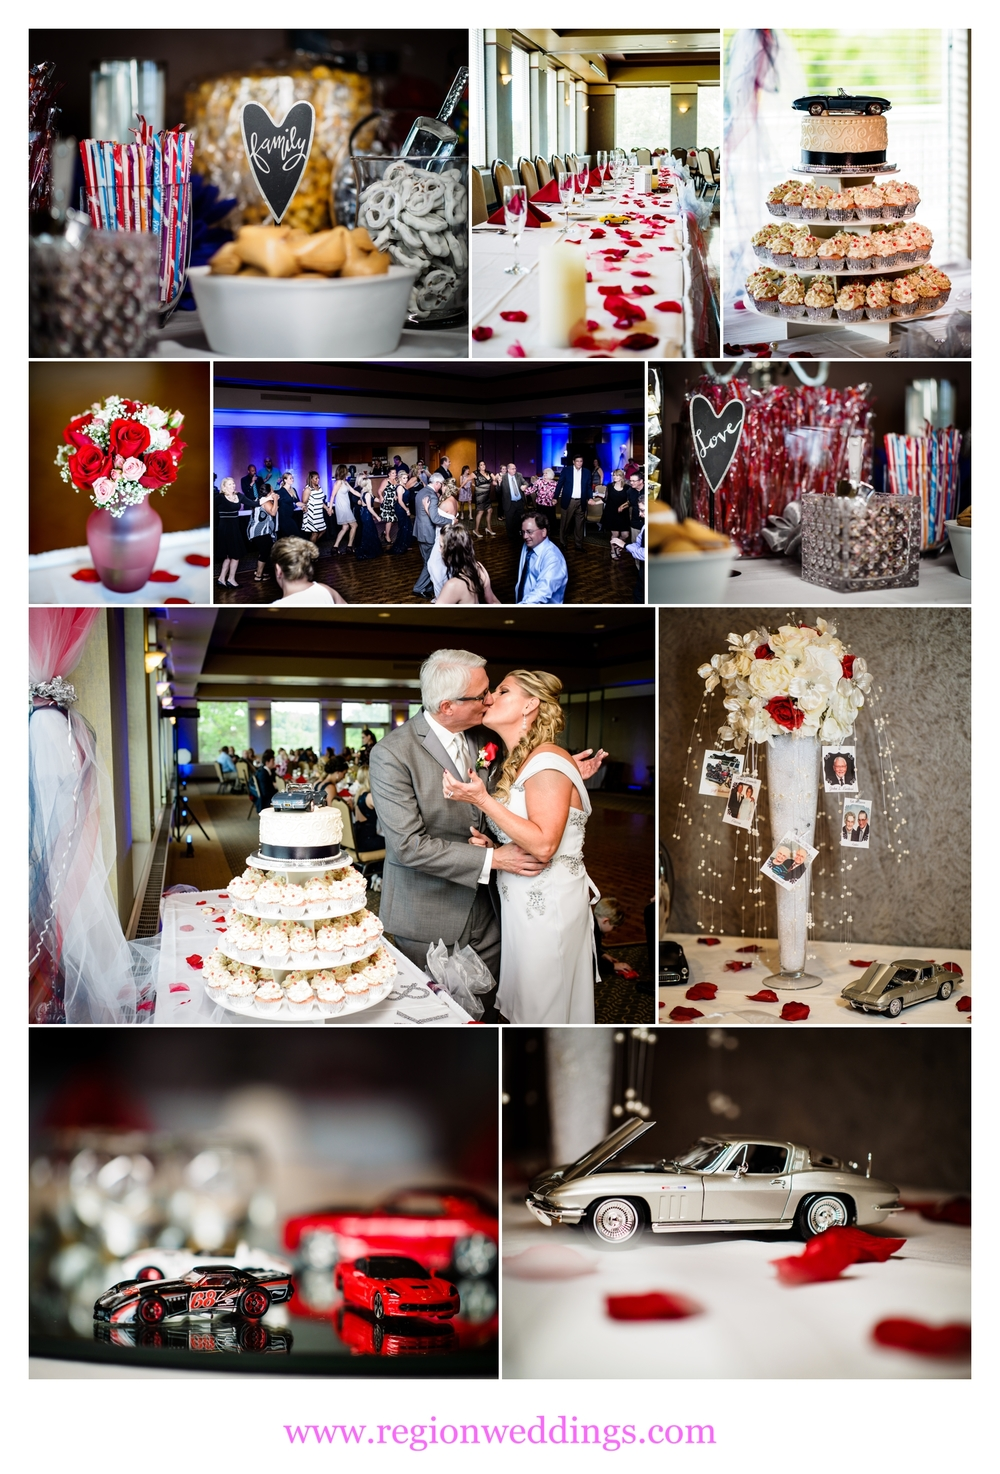 The ballroom at Sand Creek is decorated with classic car wedding decor.